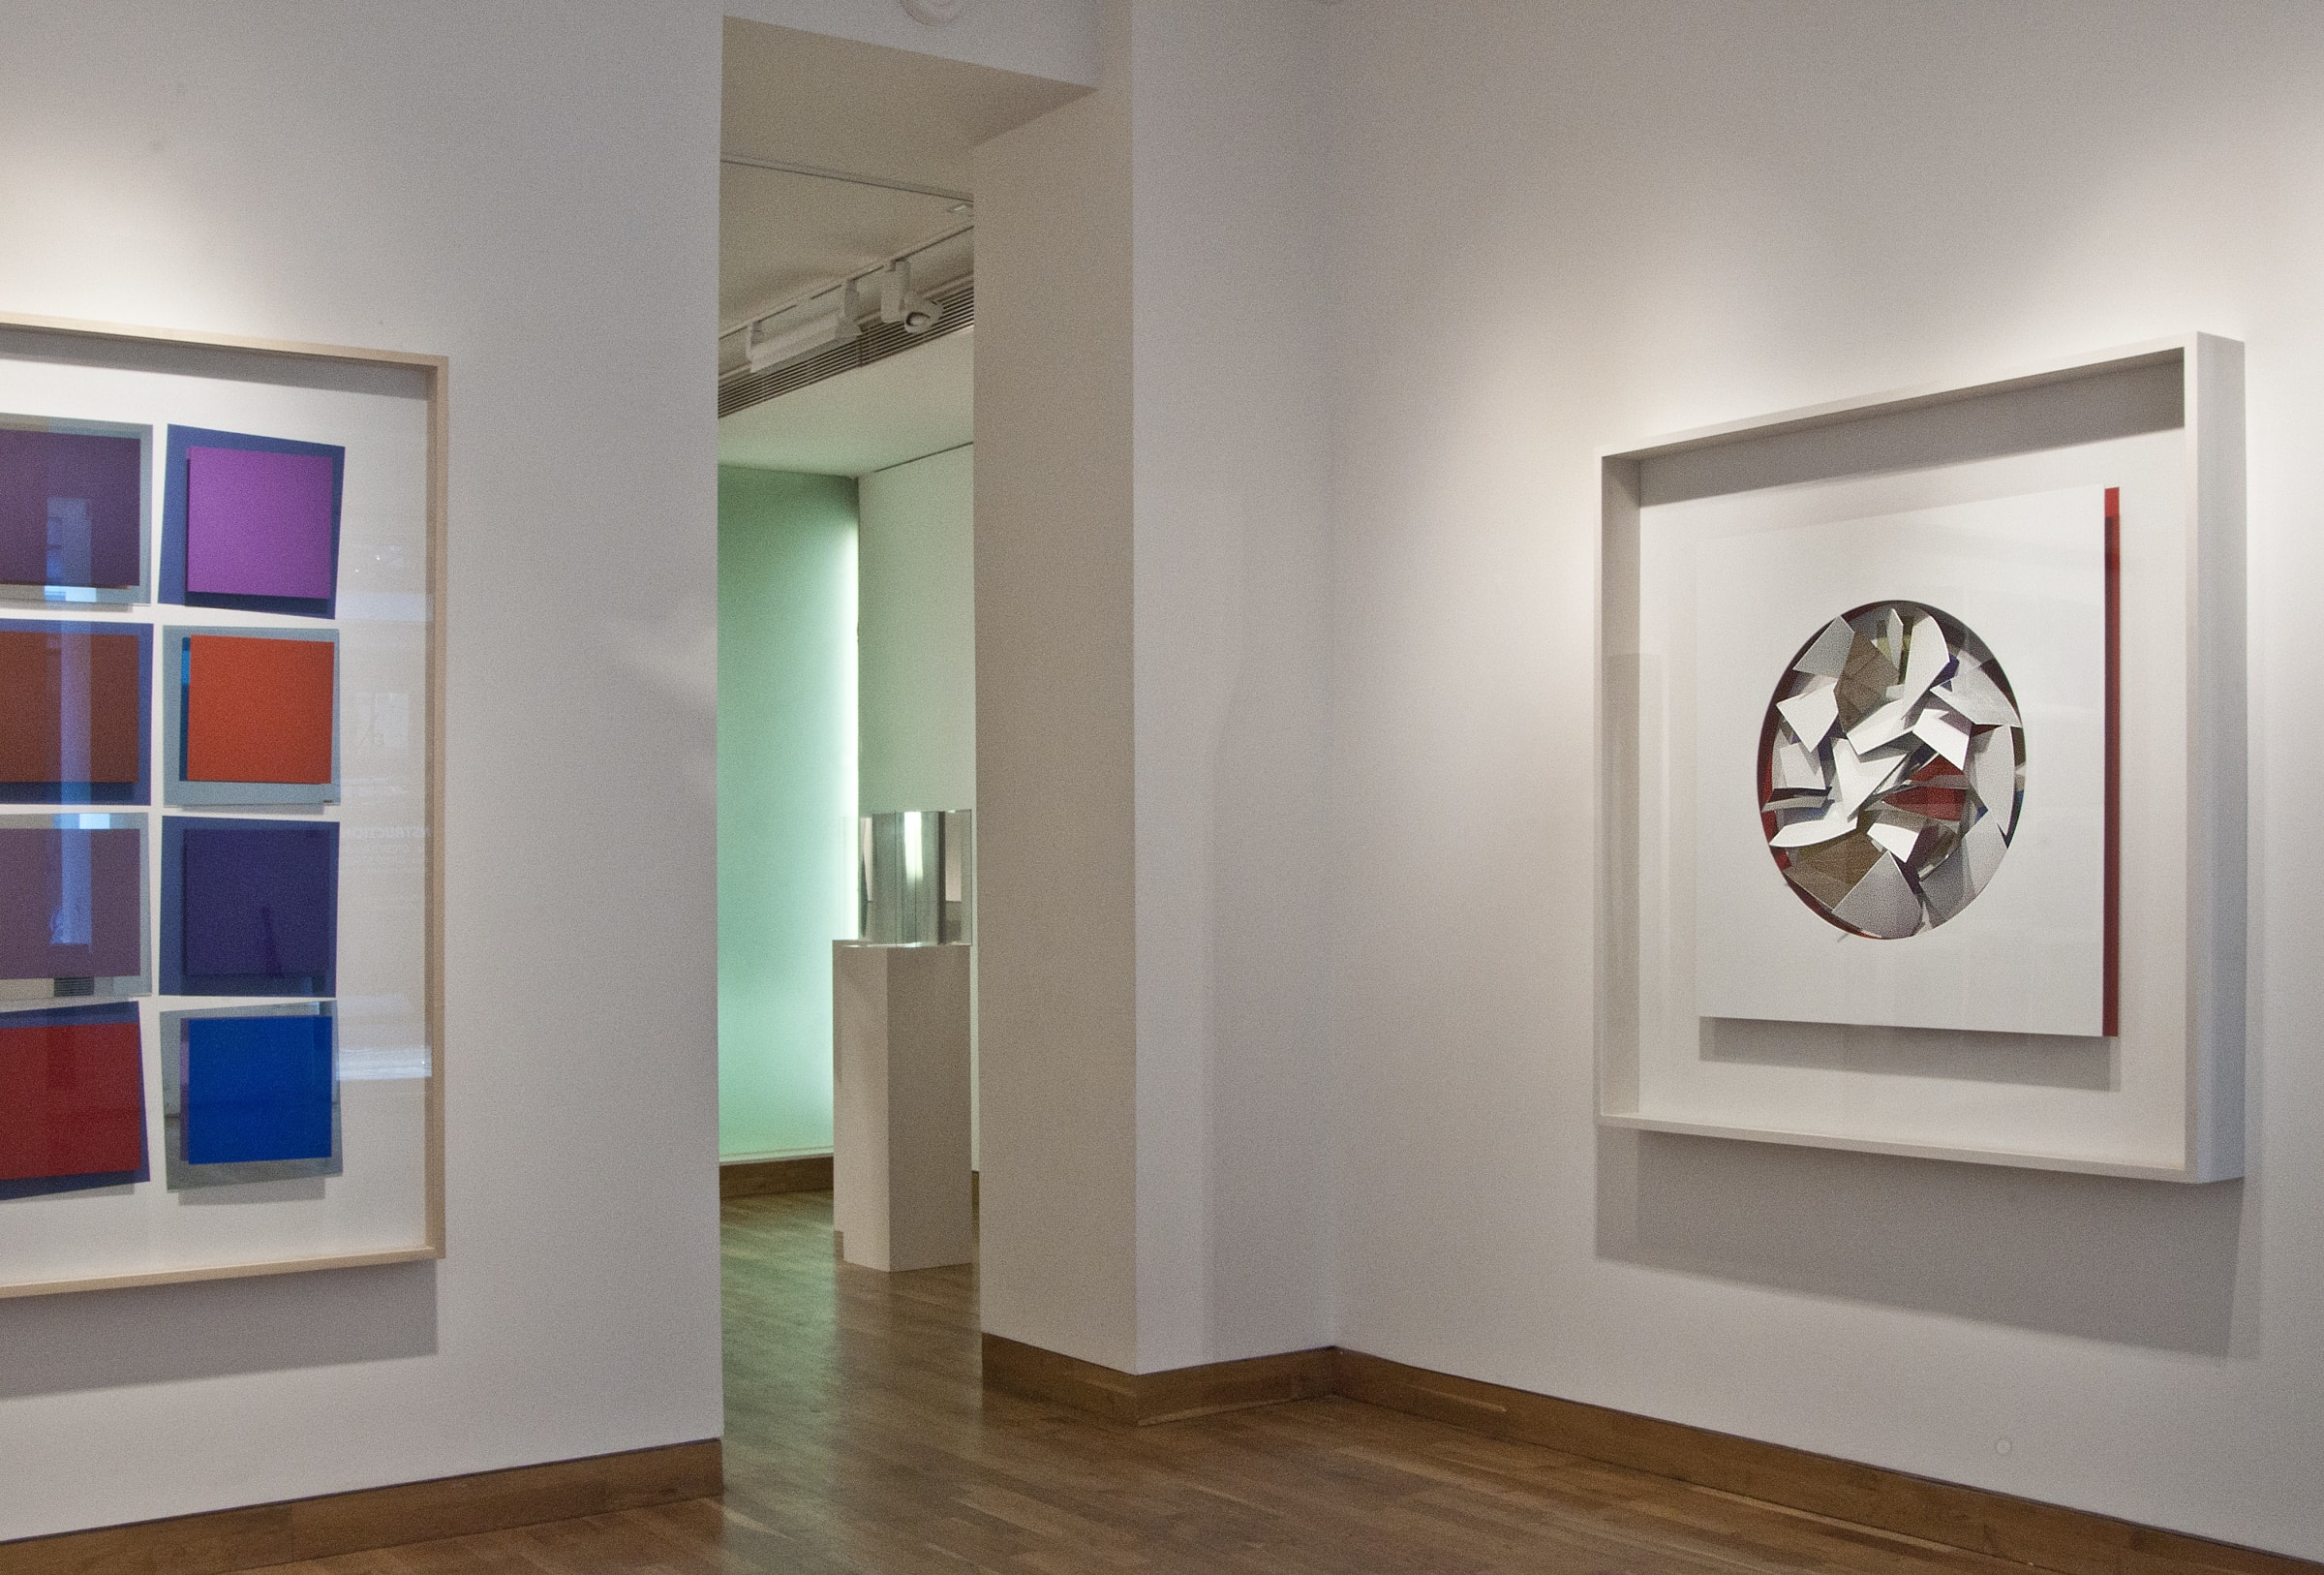 """<span class=""""link fancybox-details-link""""><a href=""""/exhibitions/75/works/image_standalone222/"""">View Detail Page</a></span><p>CHRISTIAN MEGERT   A NEW SPACE   11 JAN - 24 FEB 2012  Installation View</p>"""